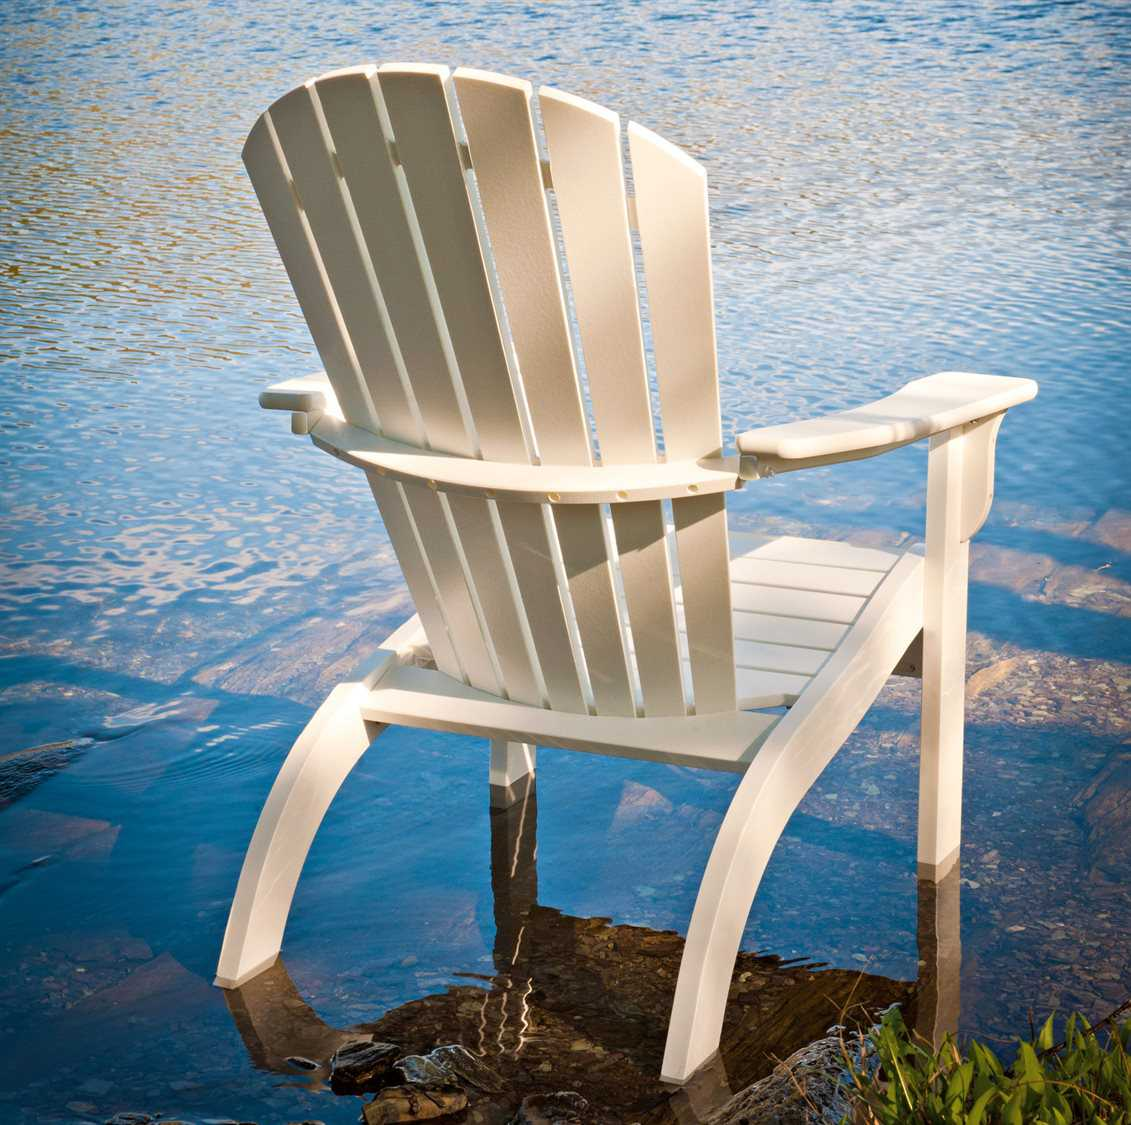 Telescope Casual Adirondack MGP Recycled Plastic Lounge